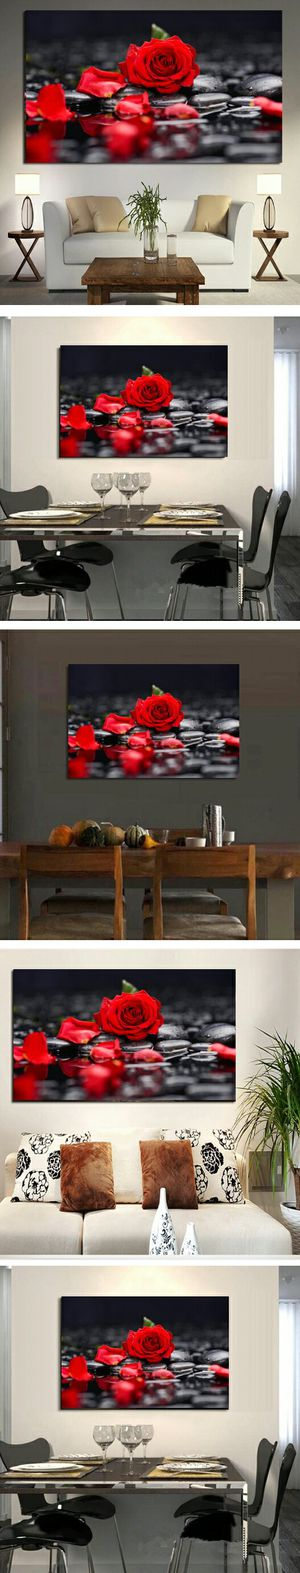 New 2018 Modern Wall Art painting Framed Canvas for Sale in Las Vegas, NV